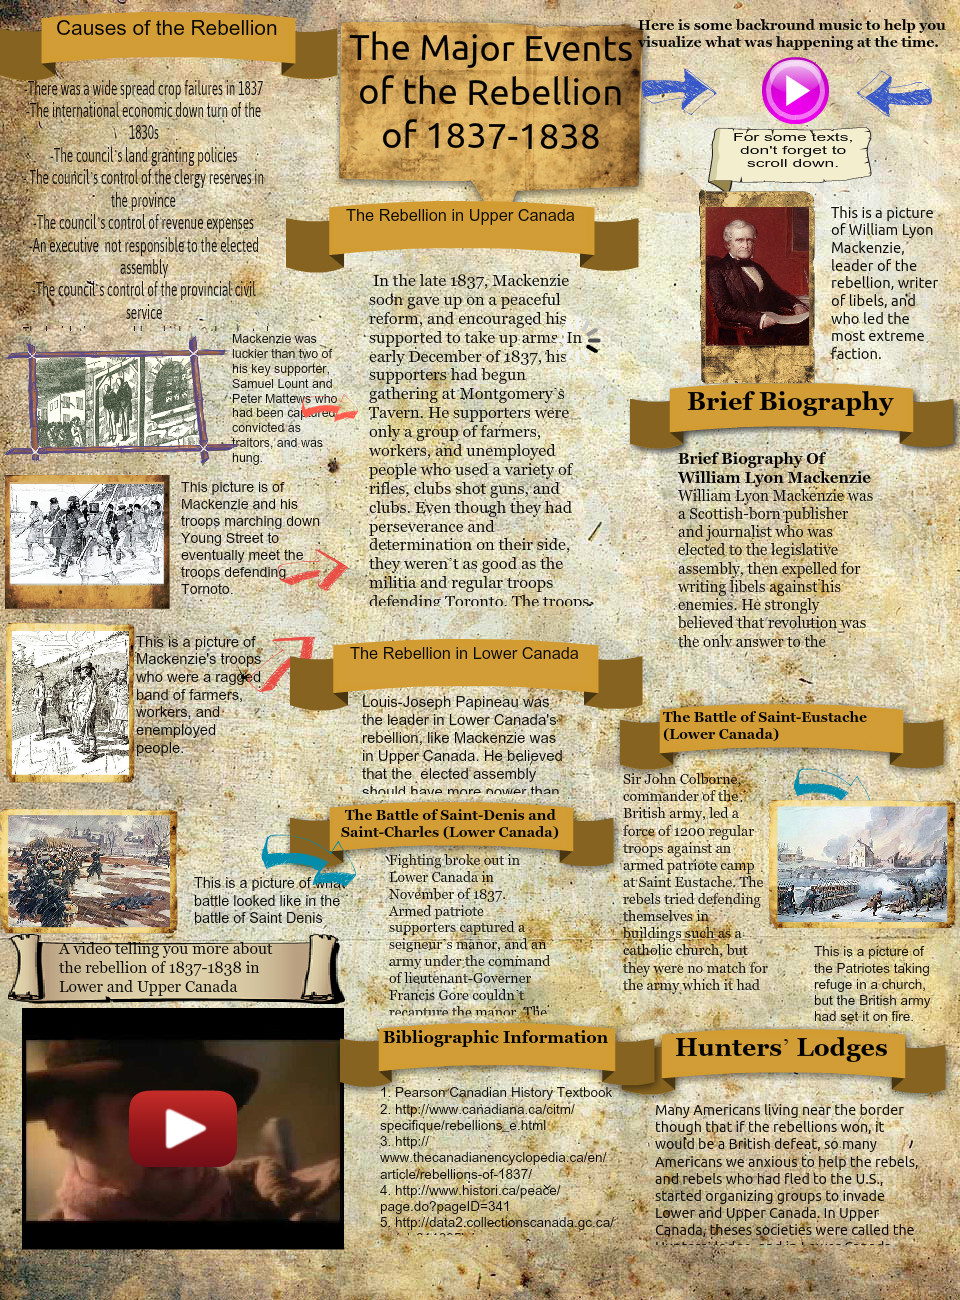 The Major Events of the Rebellion By: Valerie Live Tan